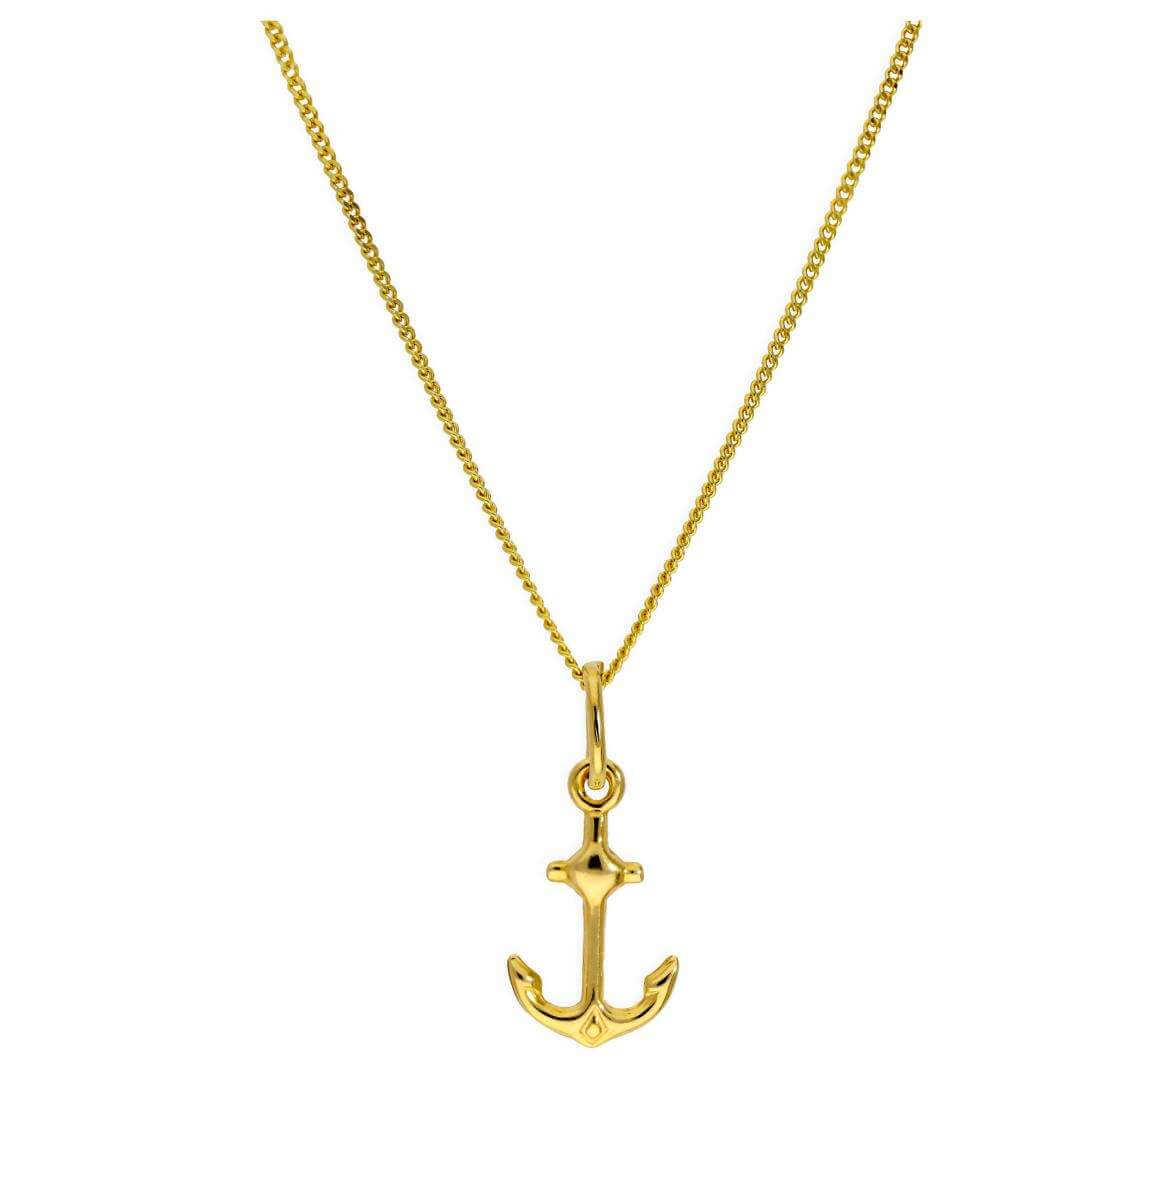 9ct Gold Ship Anchor Pendant Necklace 16 - 20 Inches